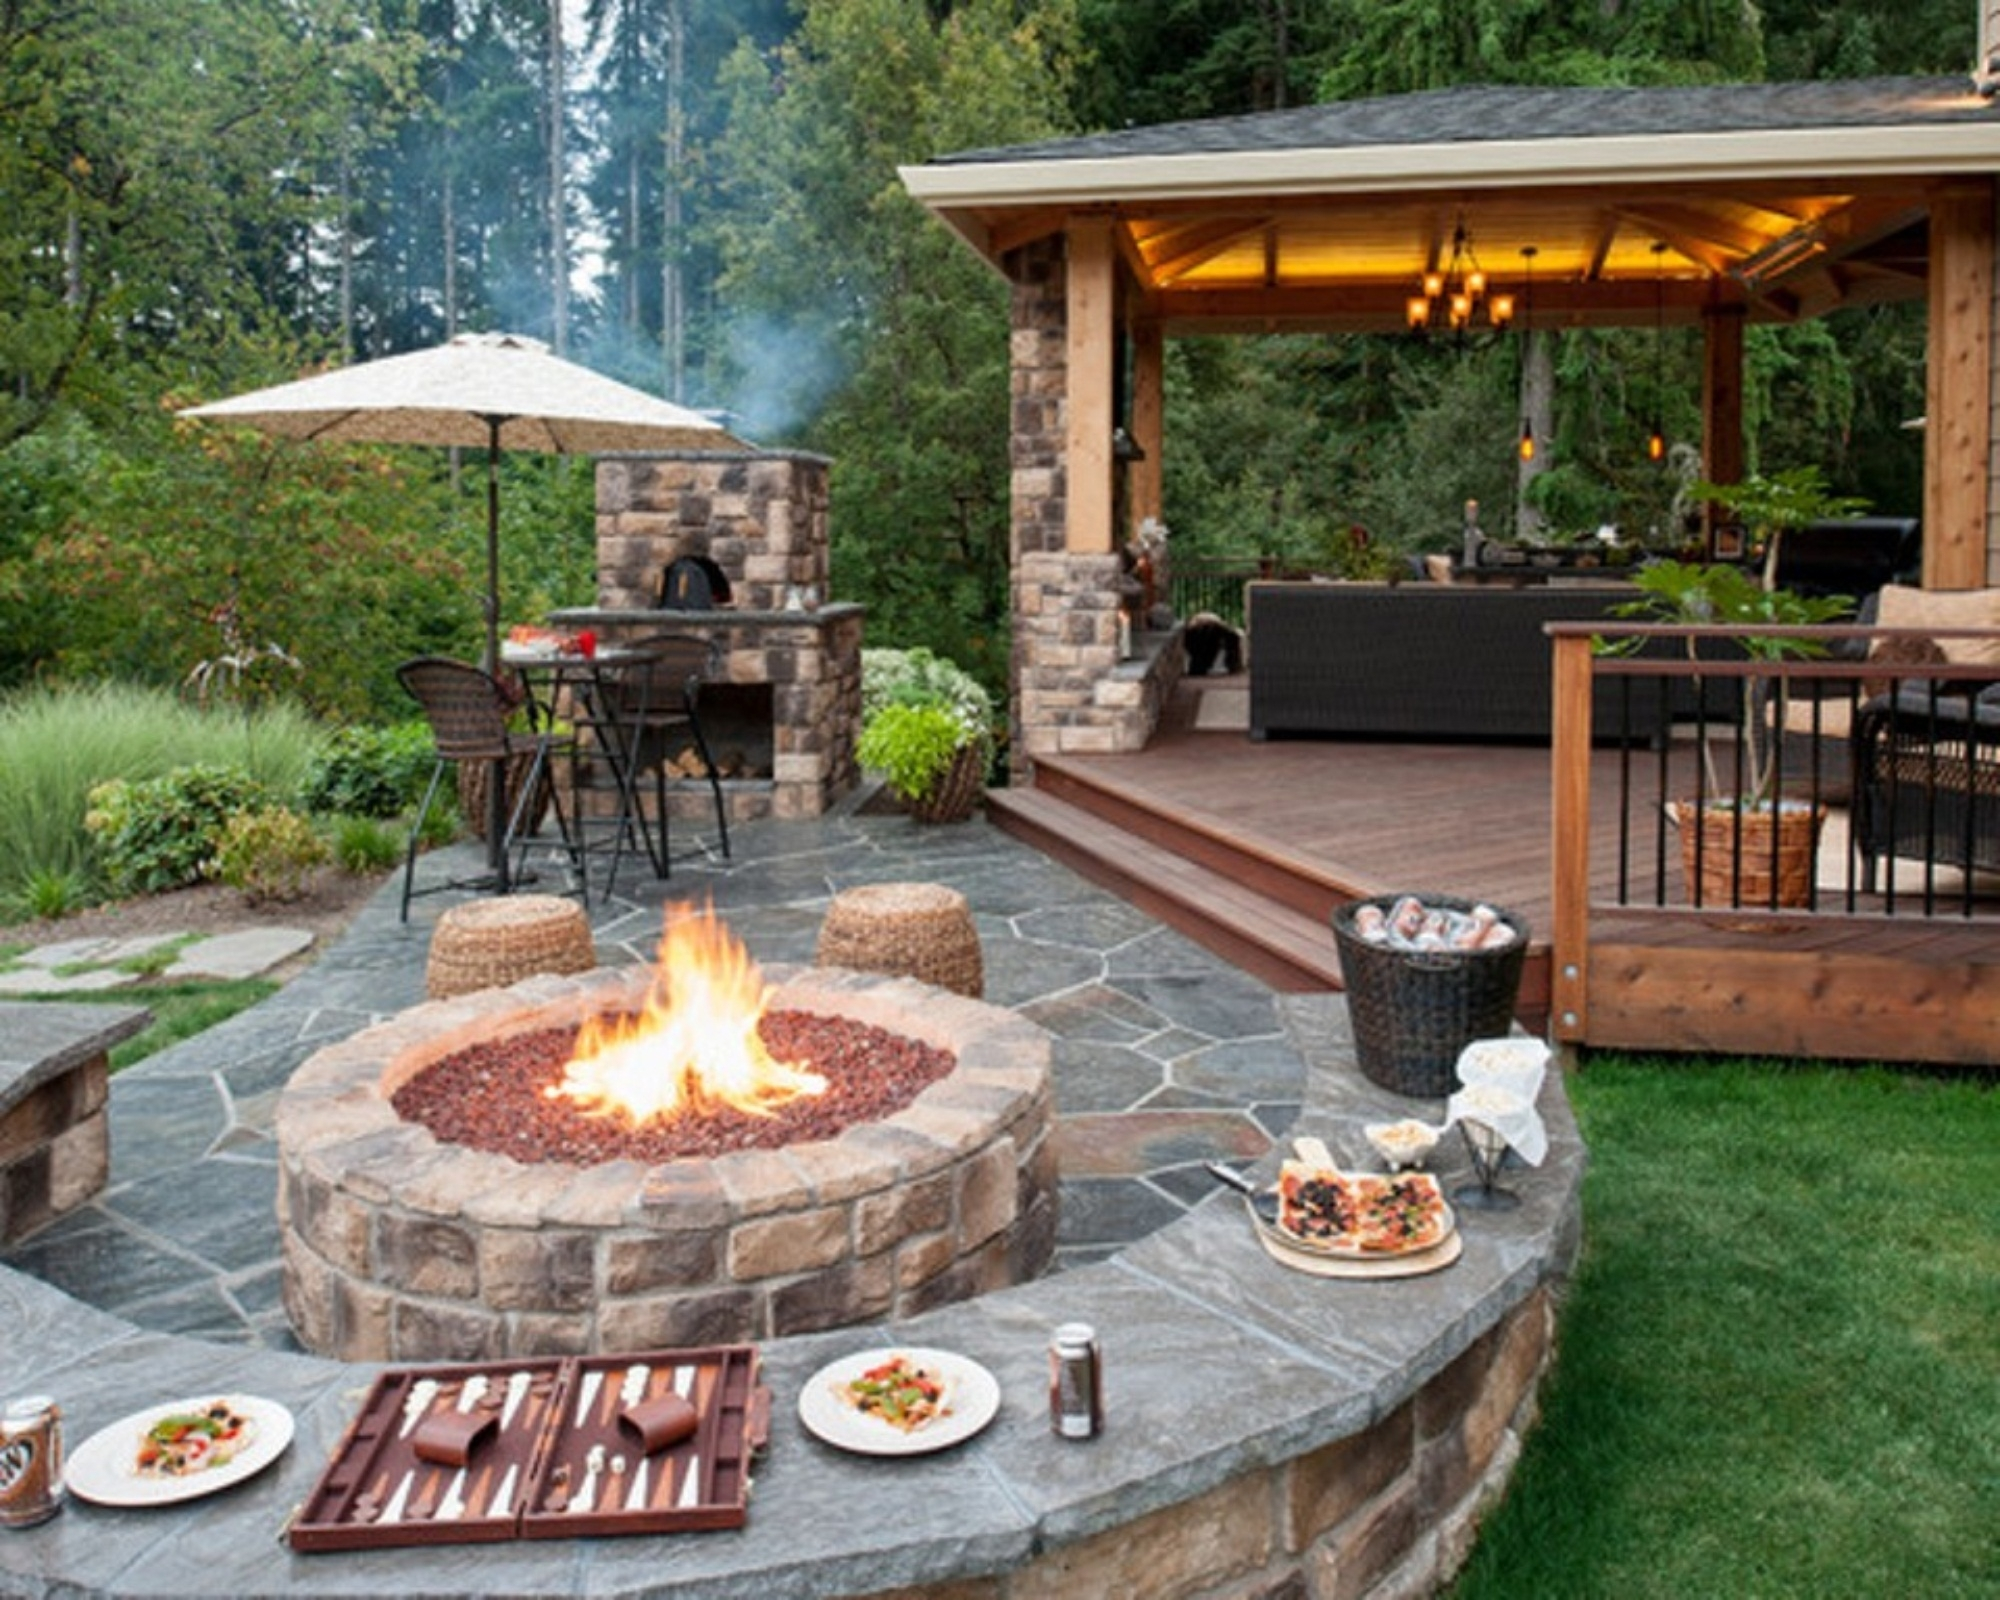 backyard patios amazing patios and decks for small backyards images inspiration for backyard LJXSUKY